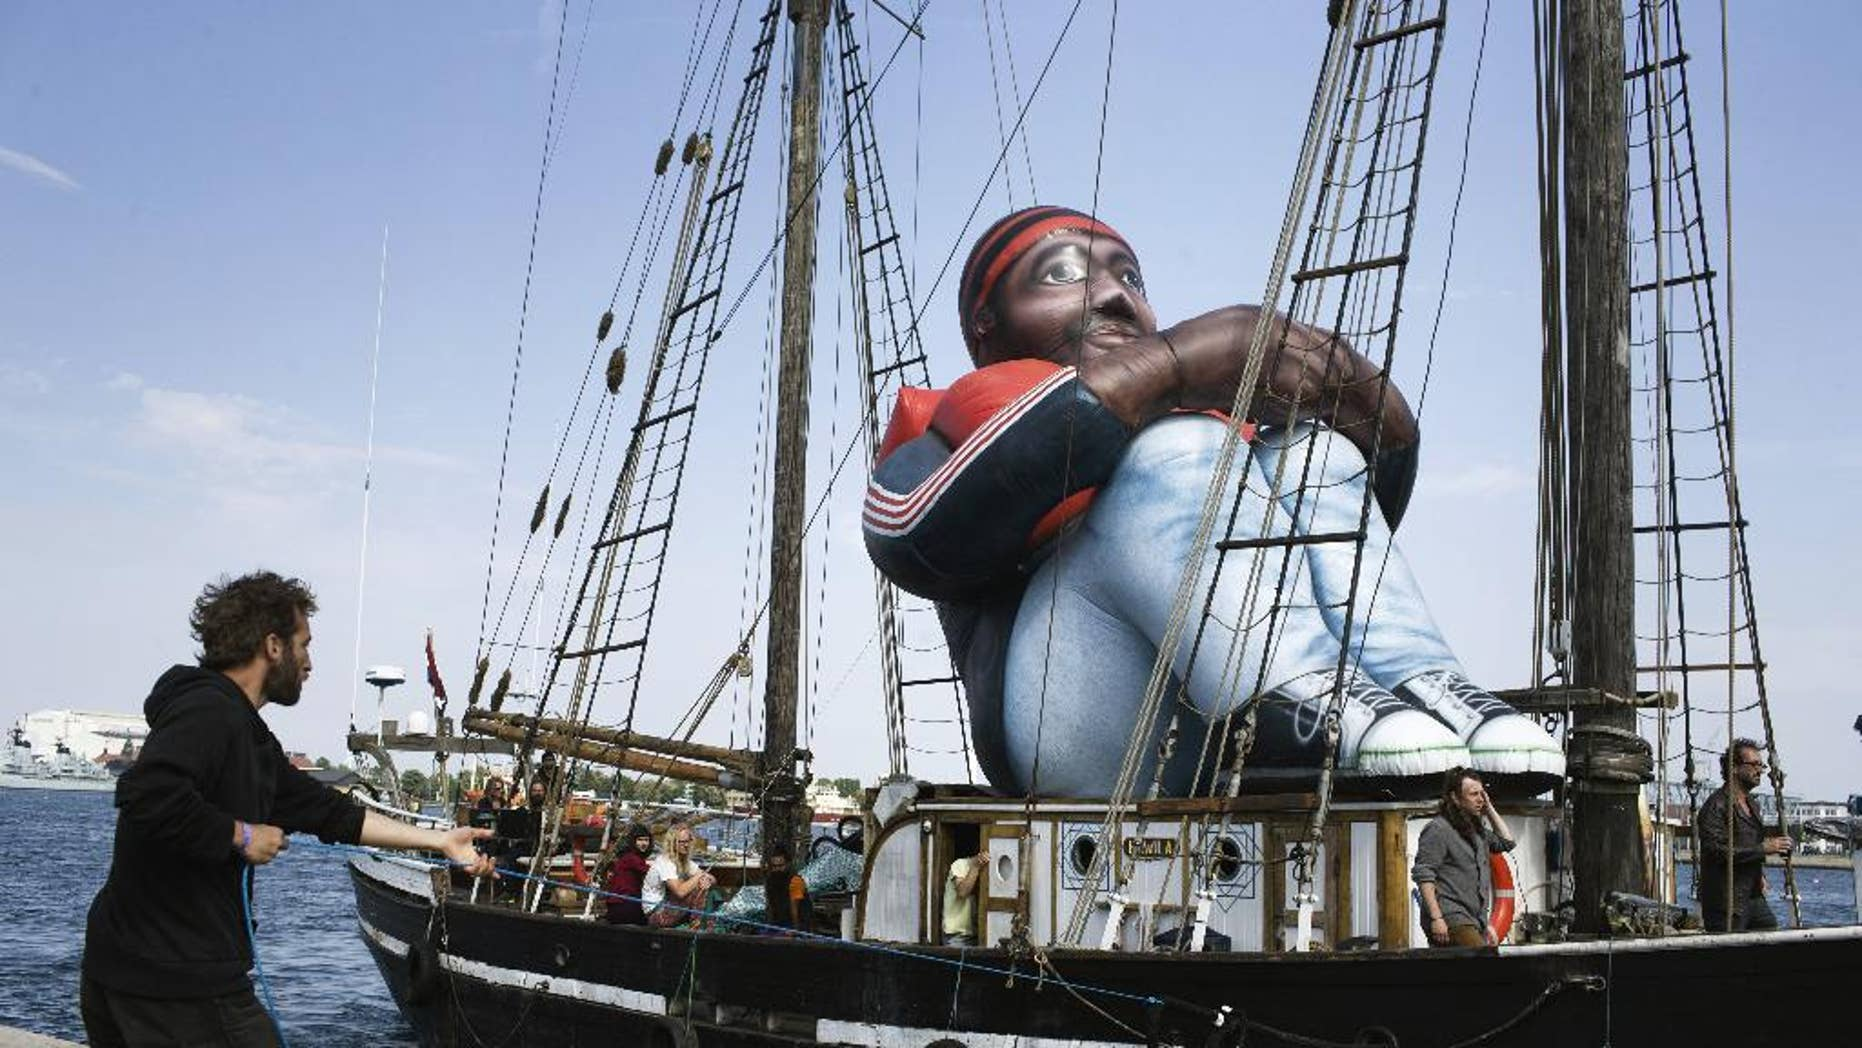 """The artwork """"Inflatable Refugee"""" by Belgian artist collective Shellekens and Peleman on the deck of a wooden boat arrives in Copenhagen, Monday May 23, 2016. The creators say the artwork is a """"symbol of the dehumanization of the refugee and the current refugee crisis happening in the world."""" (Mathias Svold Maagaard/Polfoto via AP)  DENMARK OUT"""